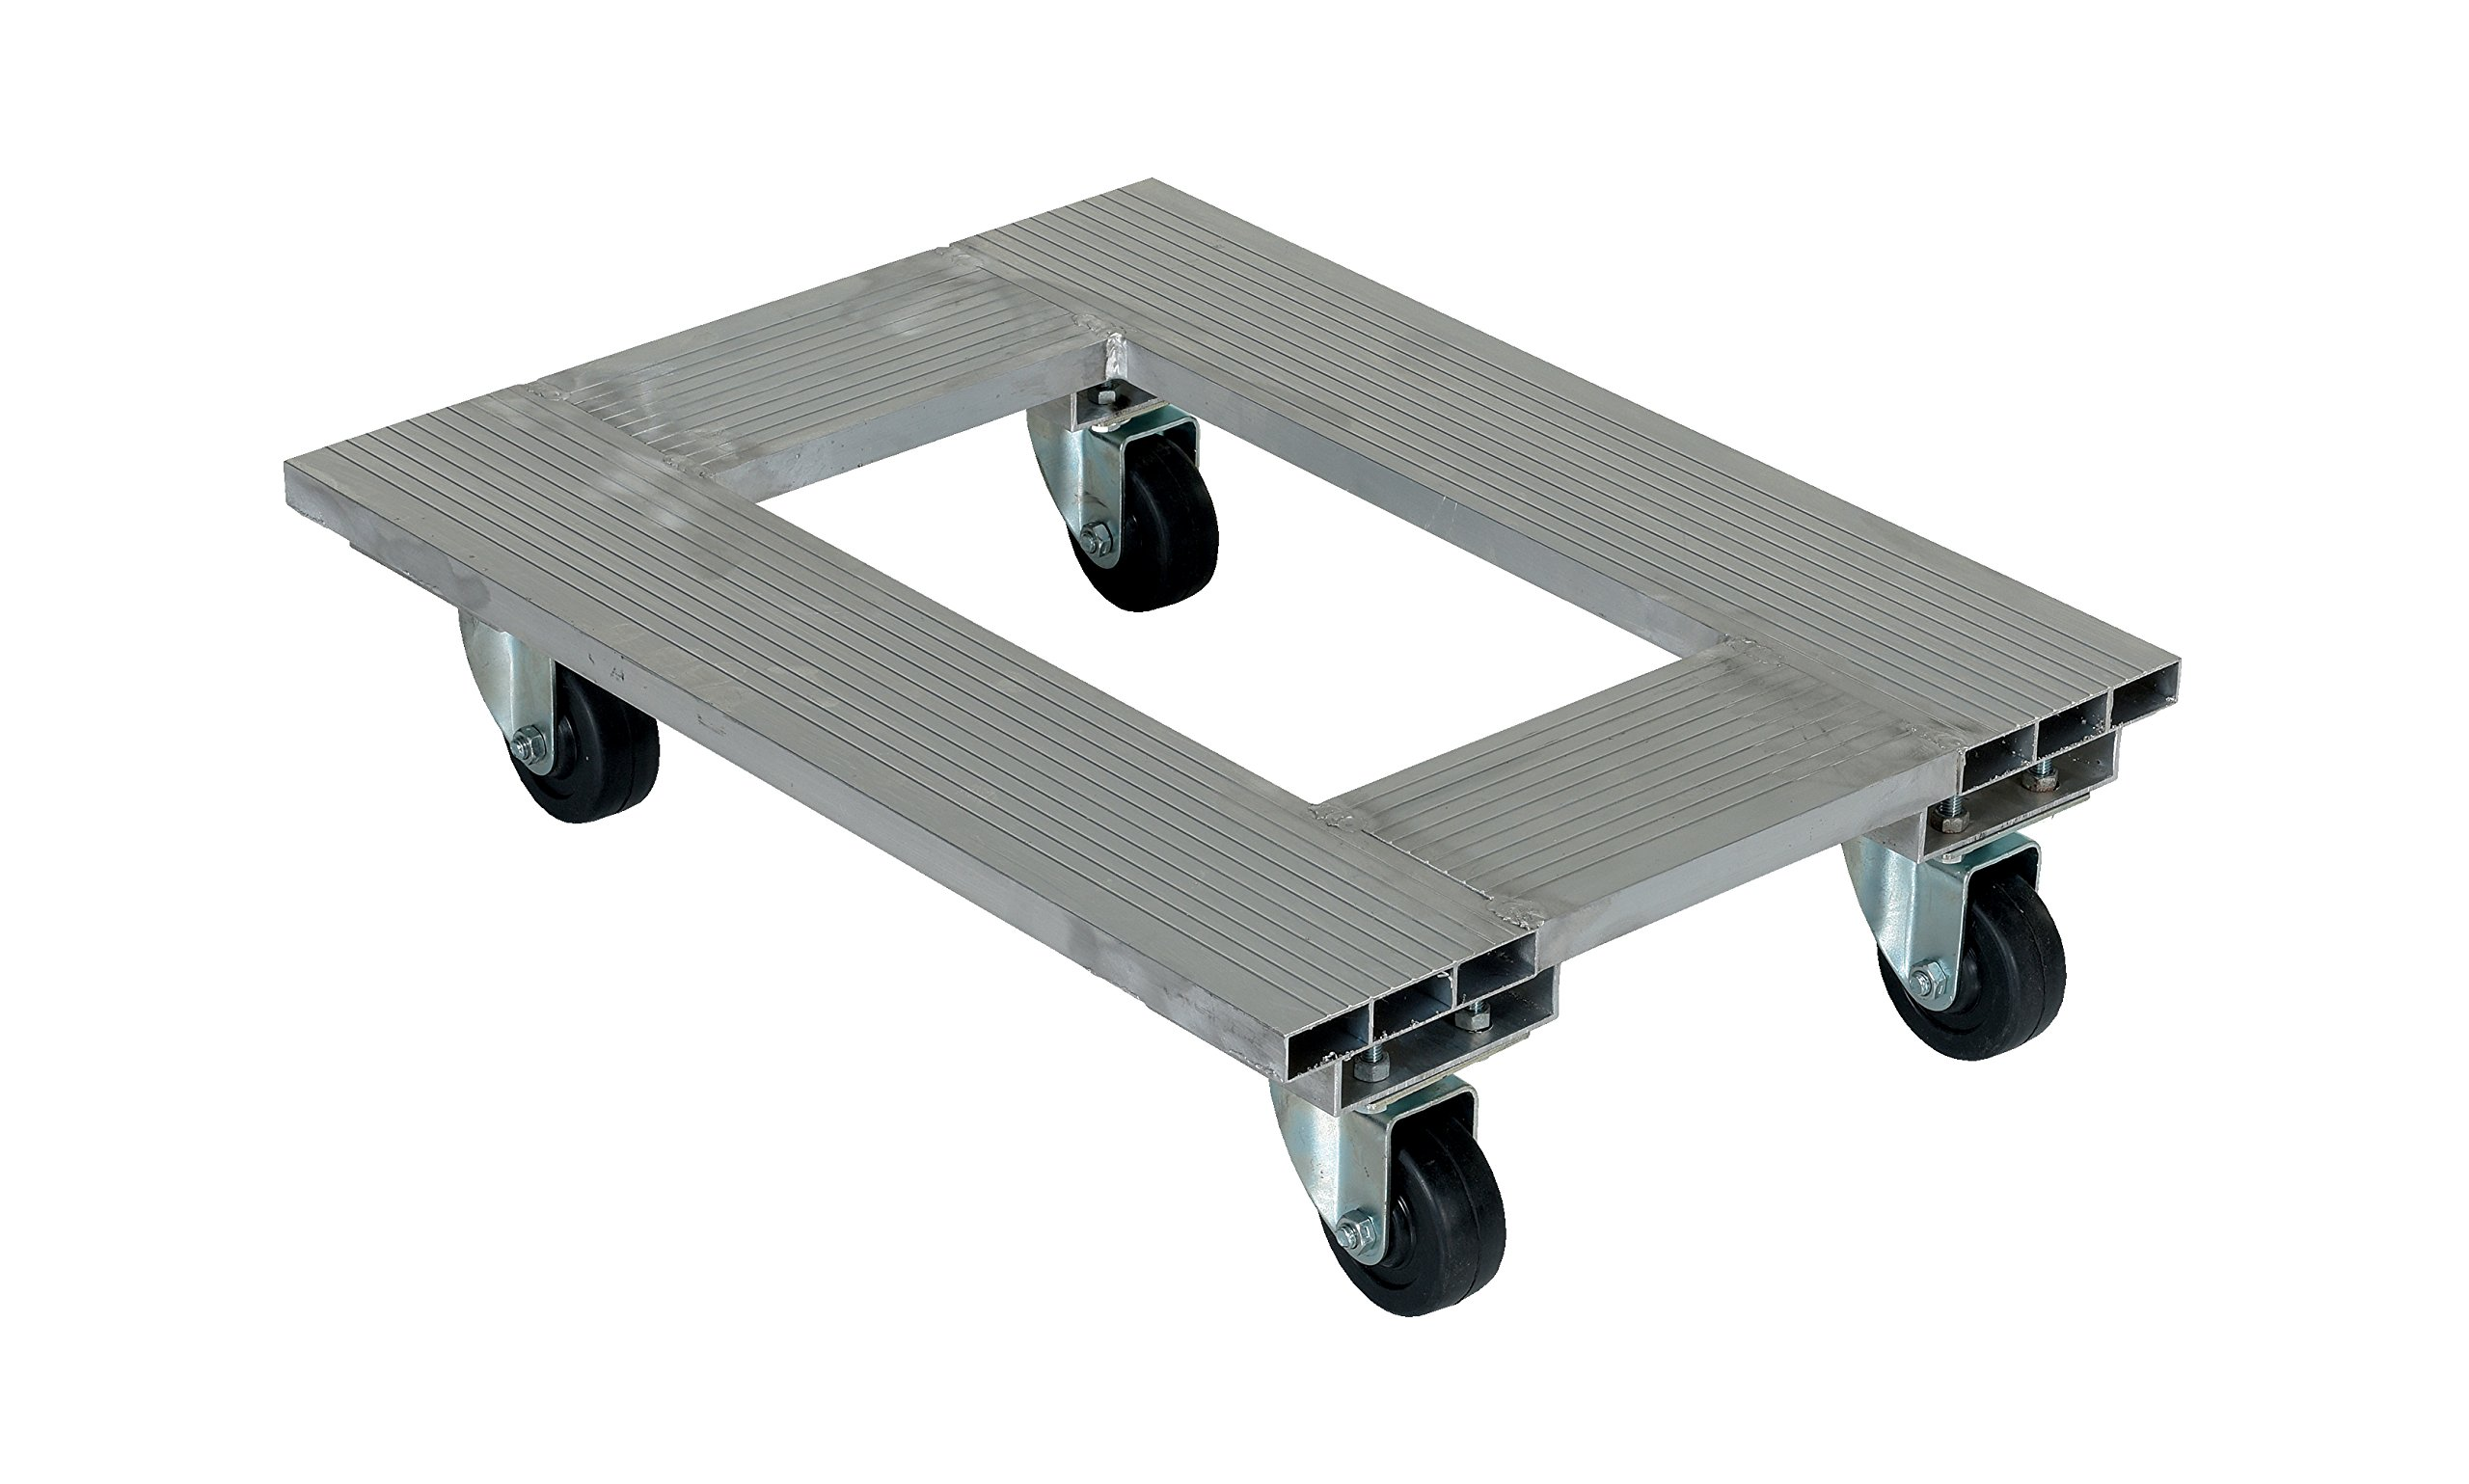 Vestil ACP-1824-9 Aluminum Channel Dolly with Hard Rubber Caster, 900 lbs Capacity, 24'' Length x 18'' Width x 6'' Height Deck